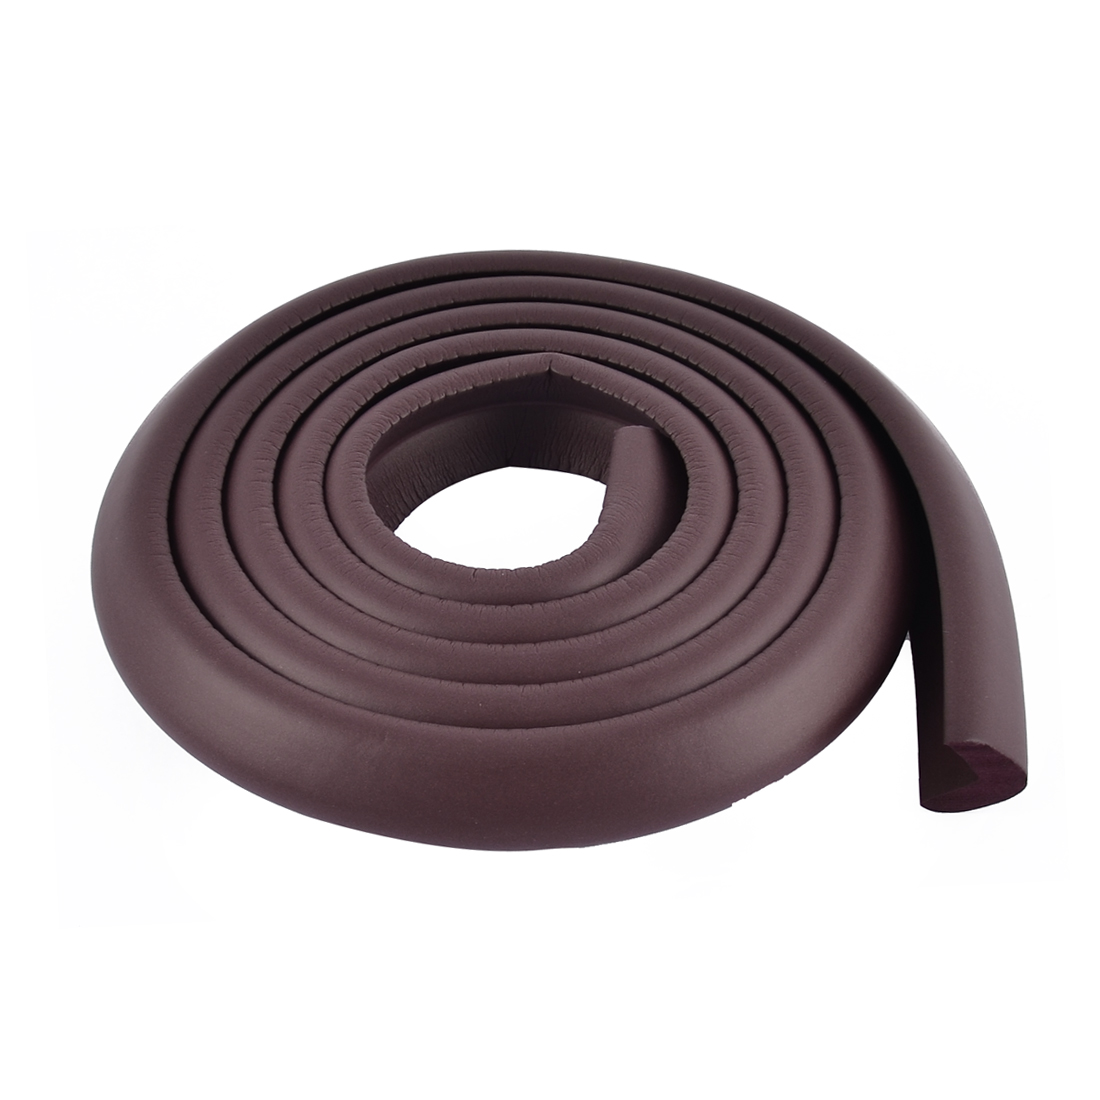 Table Corner Edge Softner Safety Protection Cushion Guard 24mm x 8mm Dark Brown